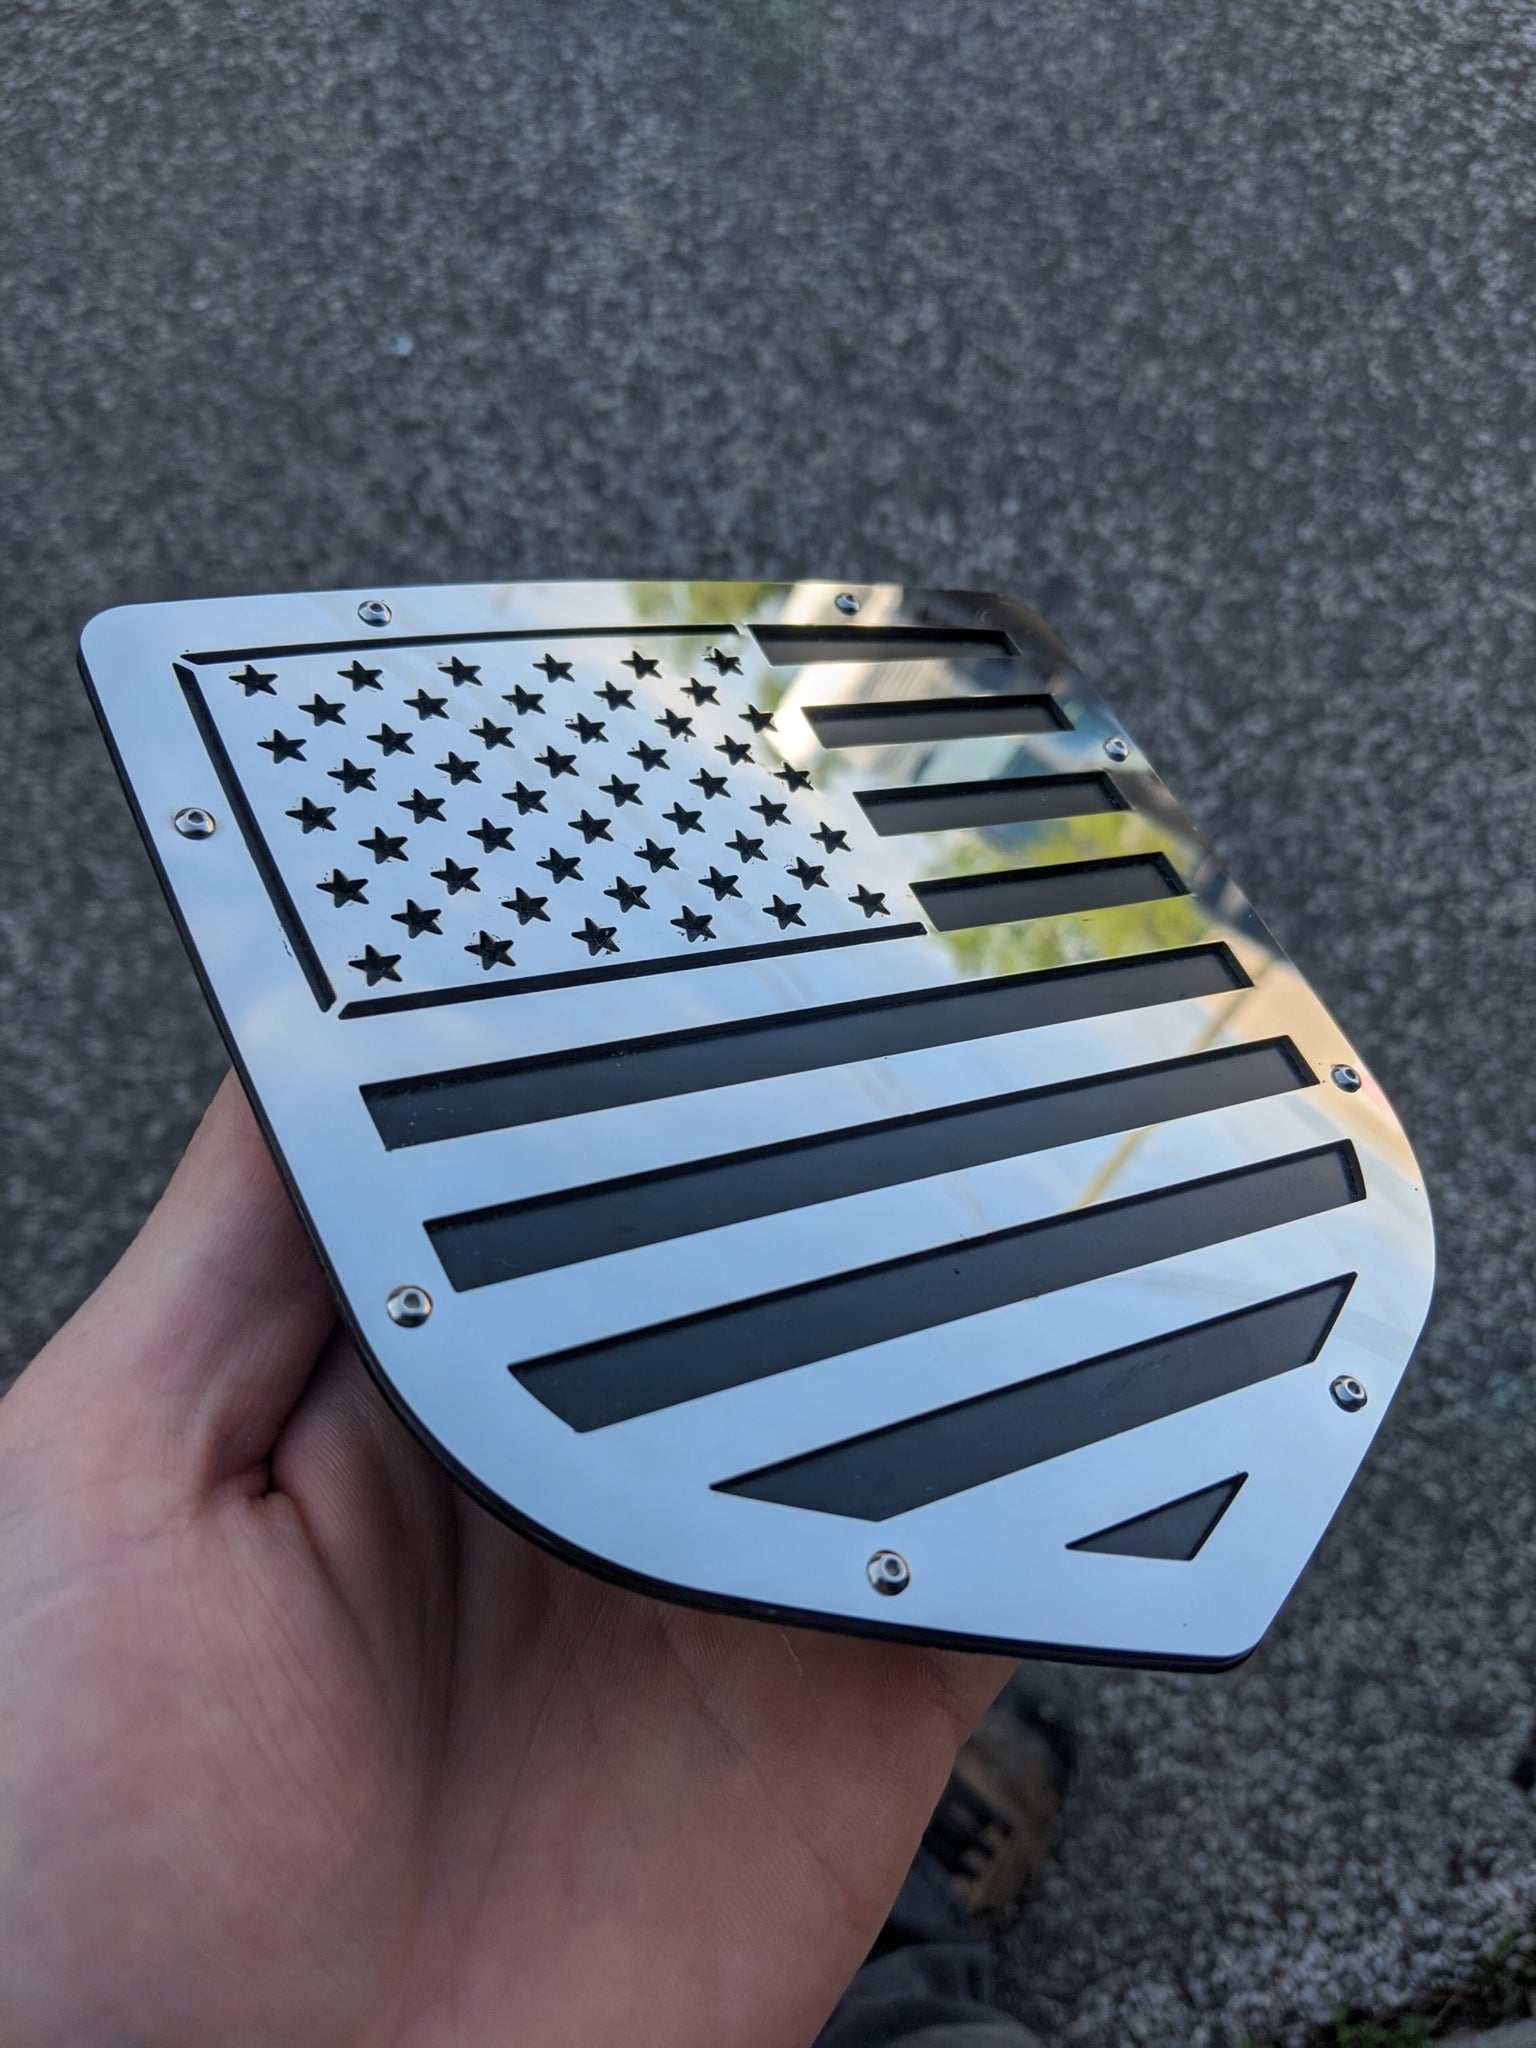 Ready to Ship - Polished American Flag Grille and Tailgate Set - Fits 2013-2018 Ram®